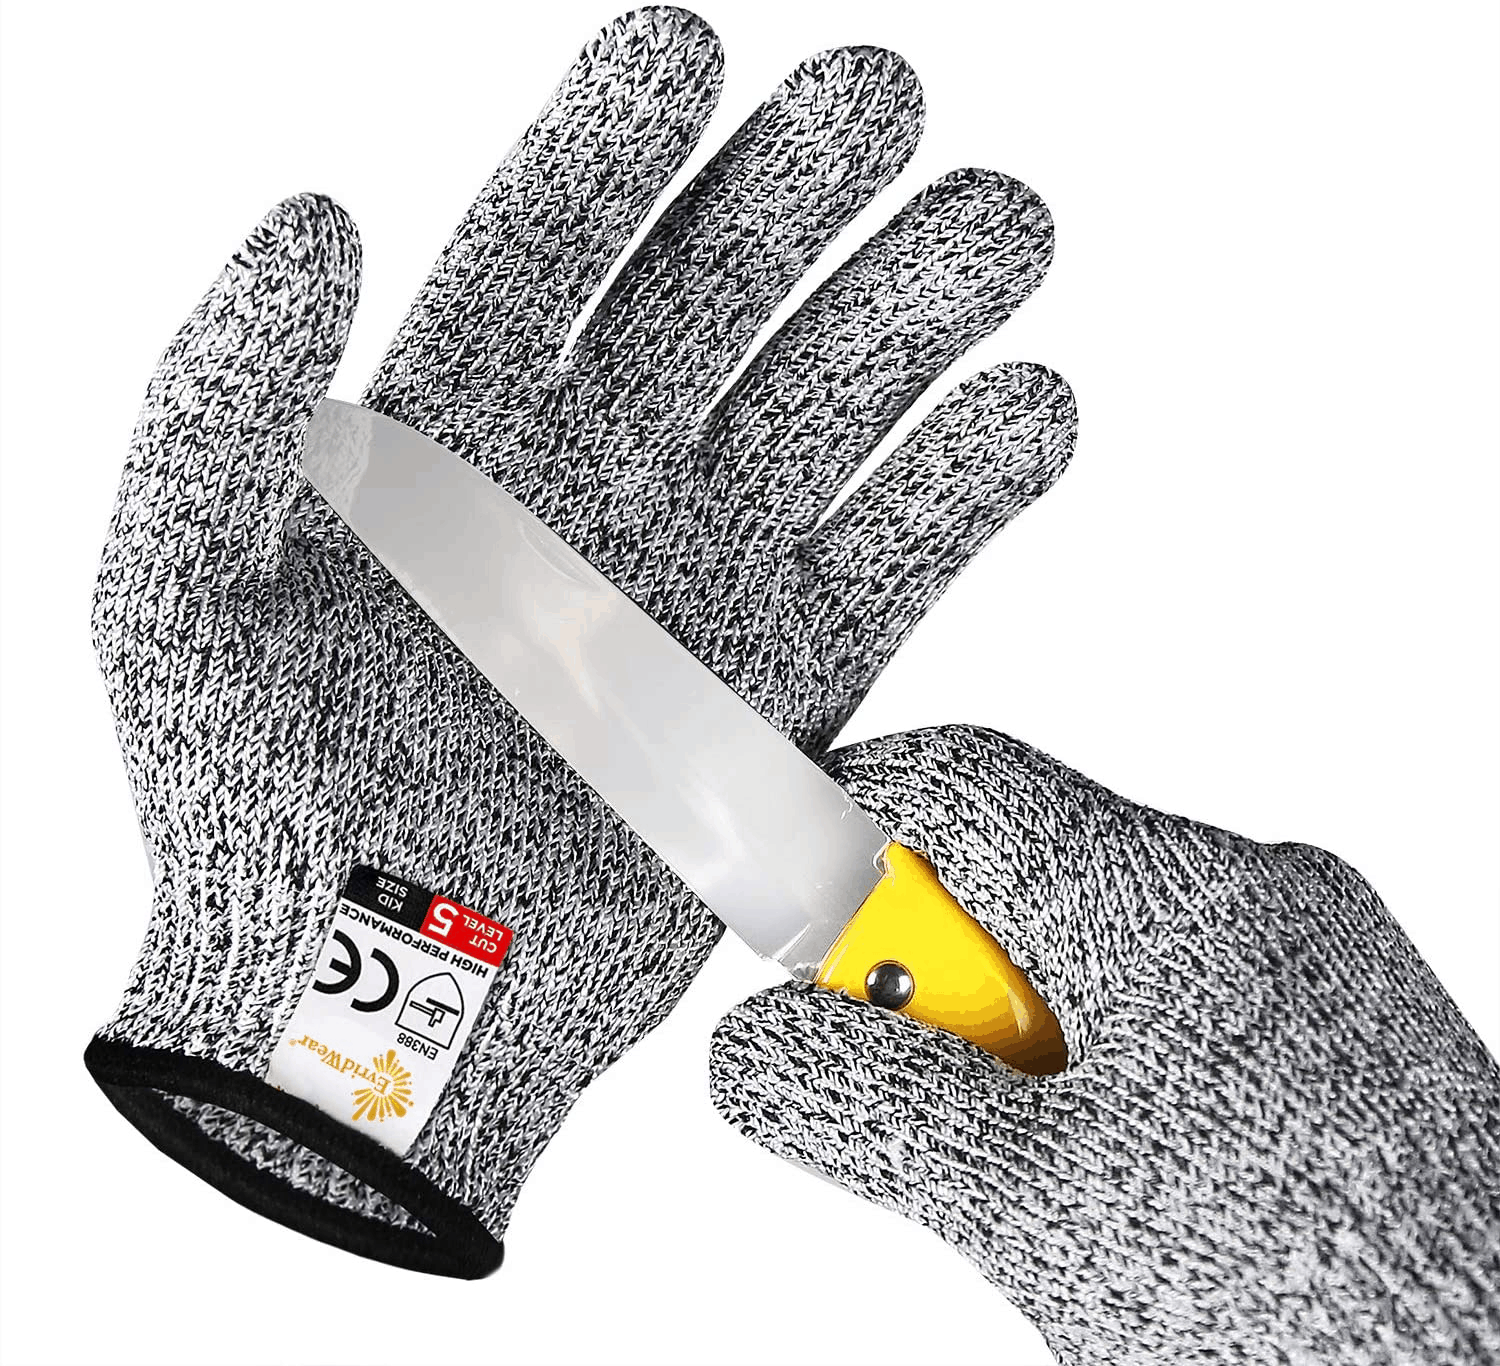 cut proof gloves for filleting bass